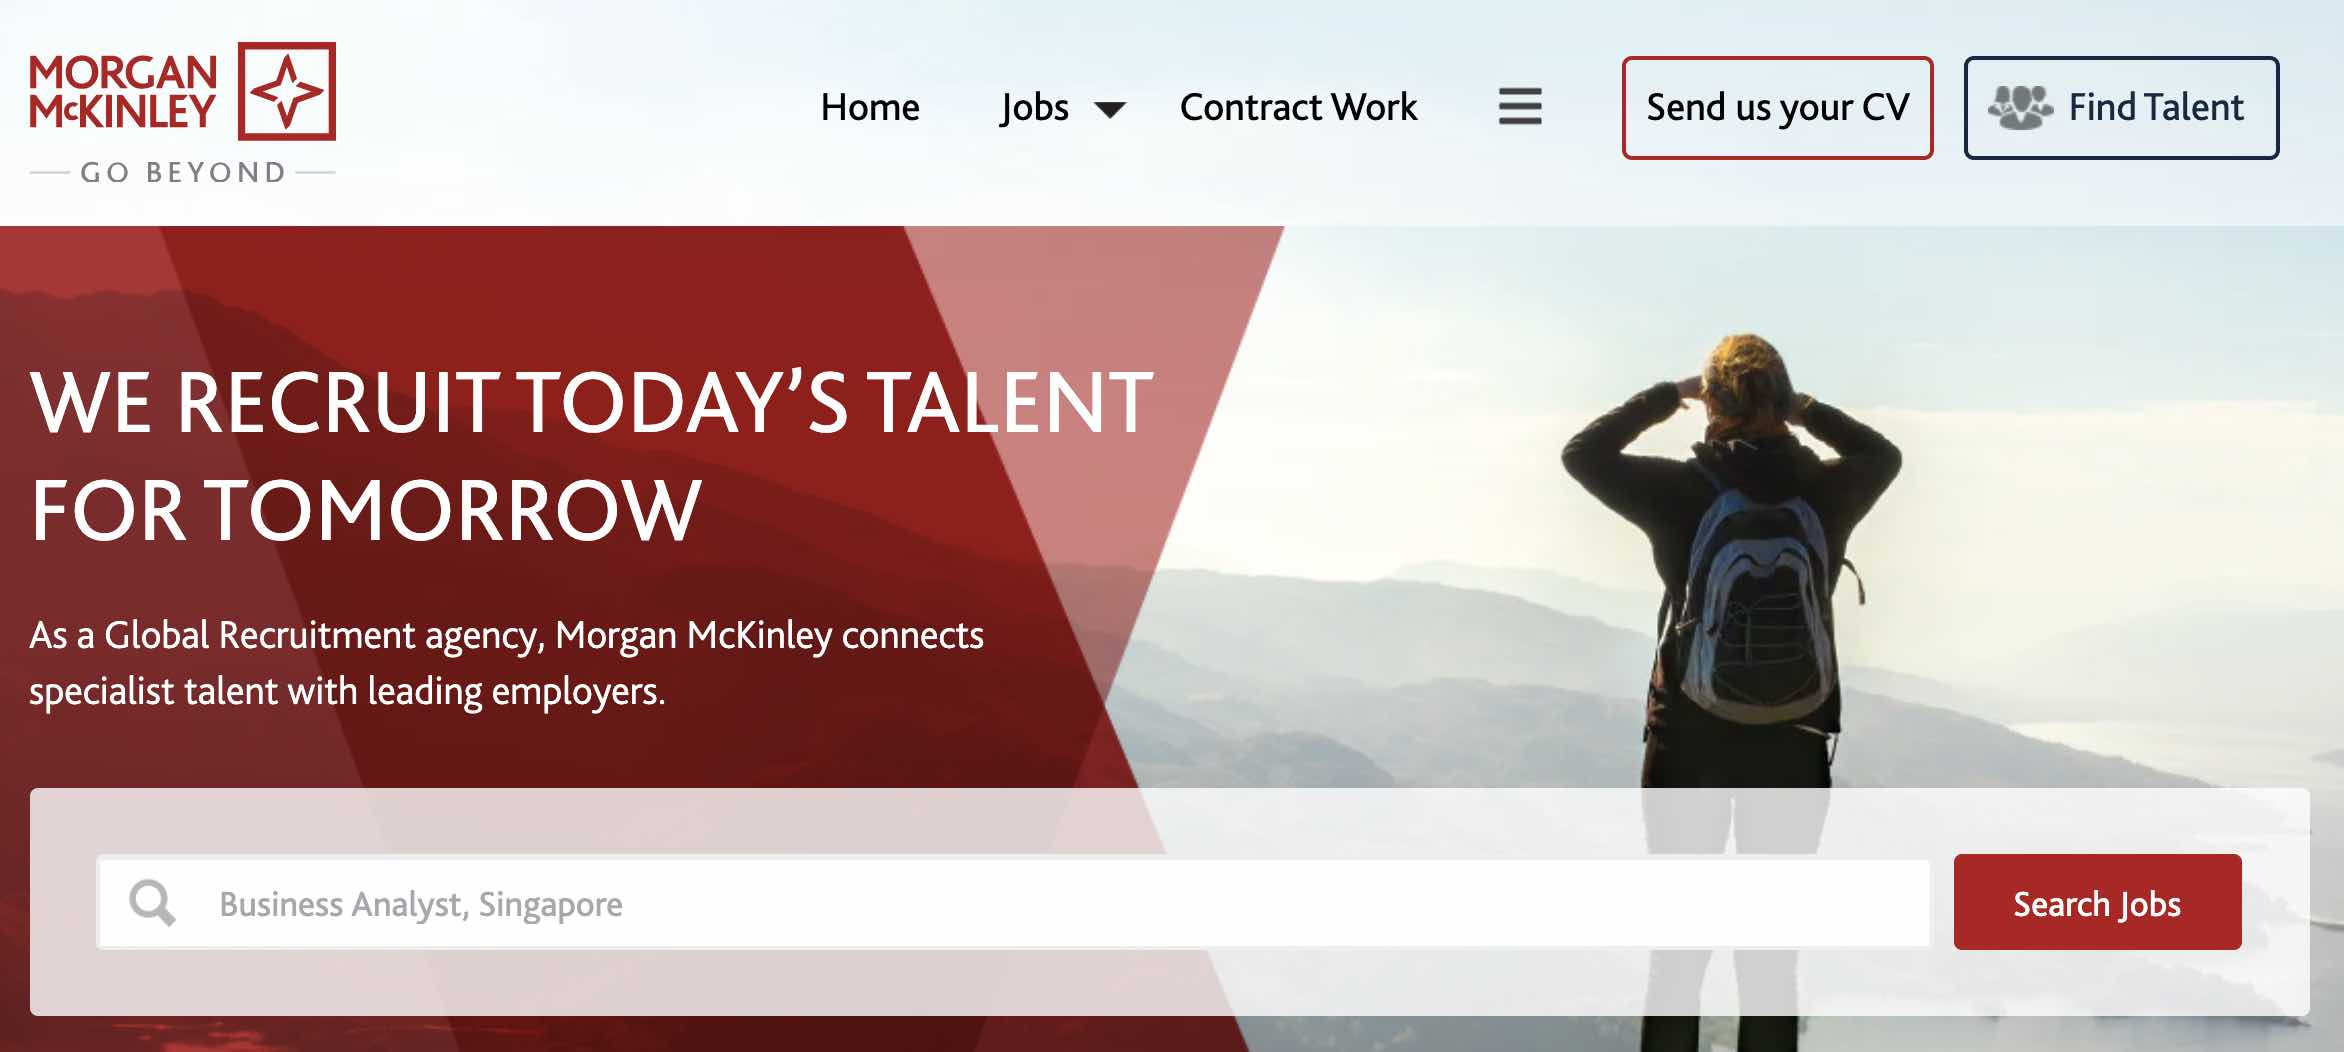 Morgan McKinley Singapore - Recruitment agency and executive search firm